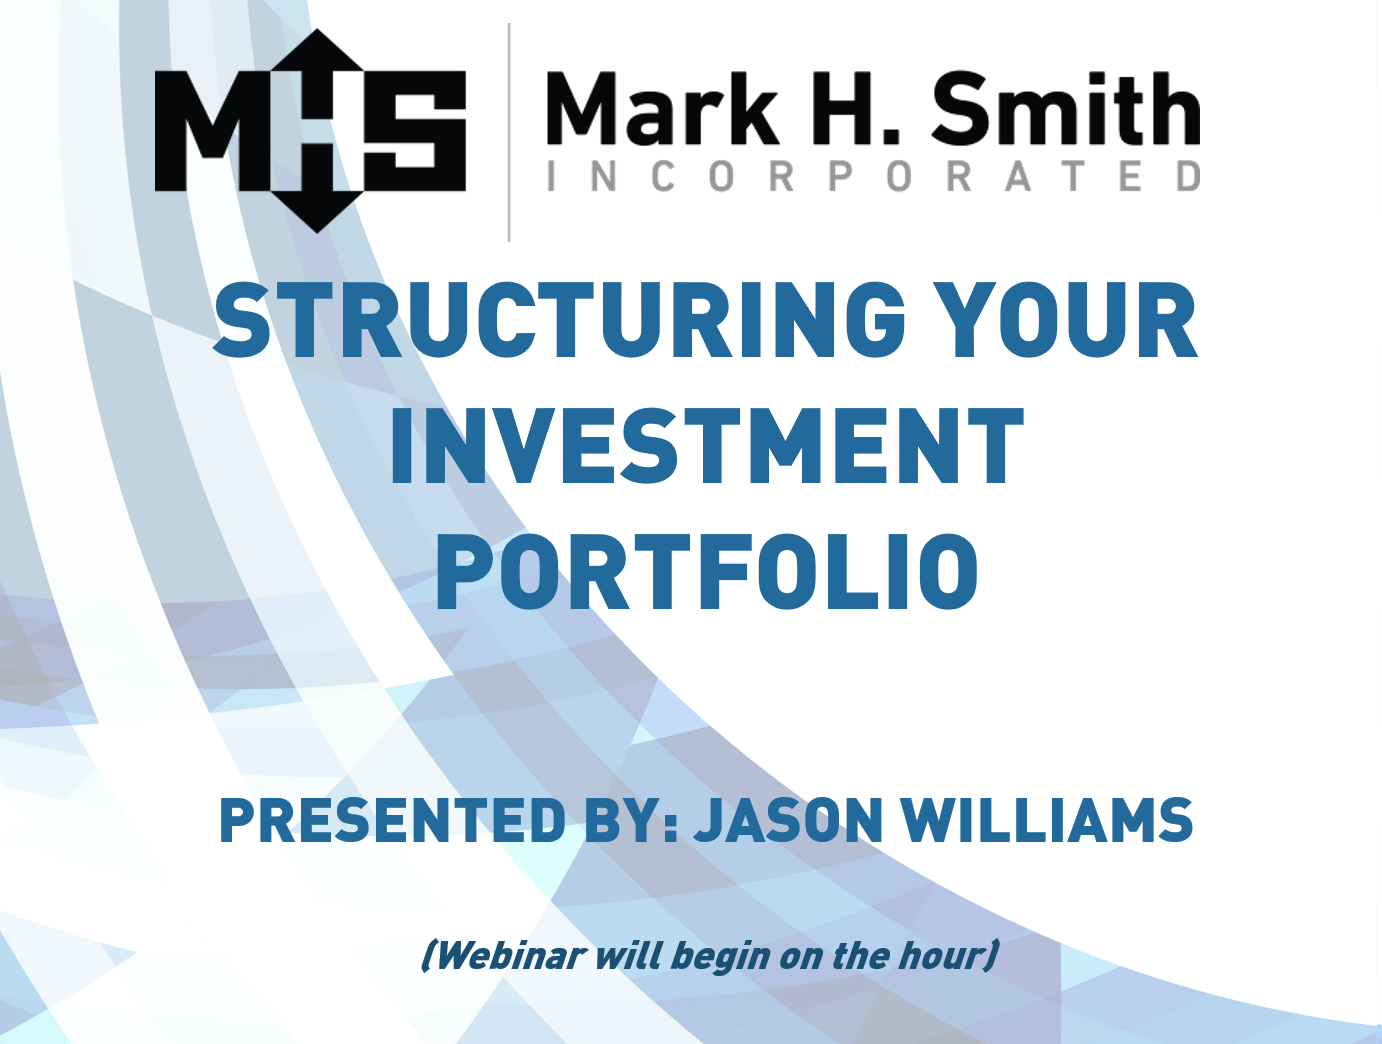 Structuring Your Investment Portfolio for Liquidity Webinar